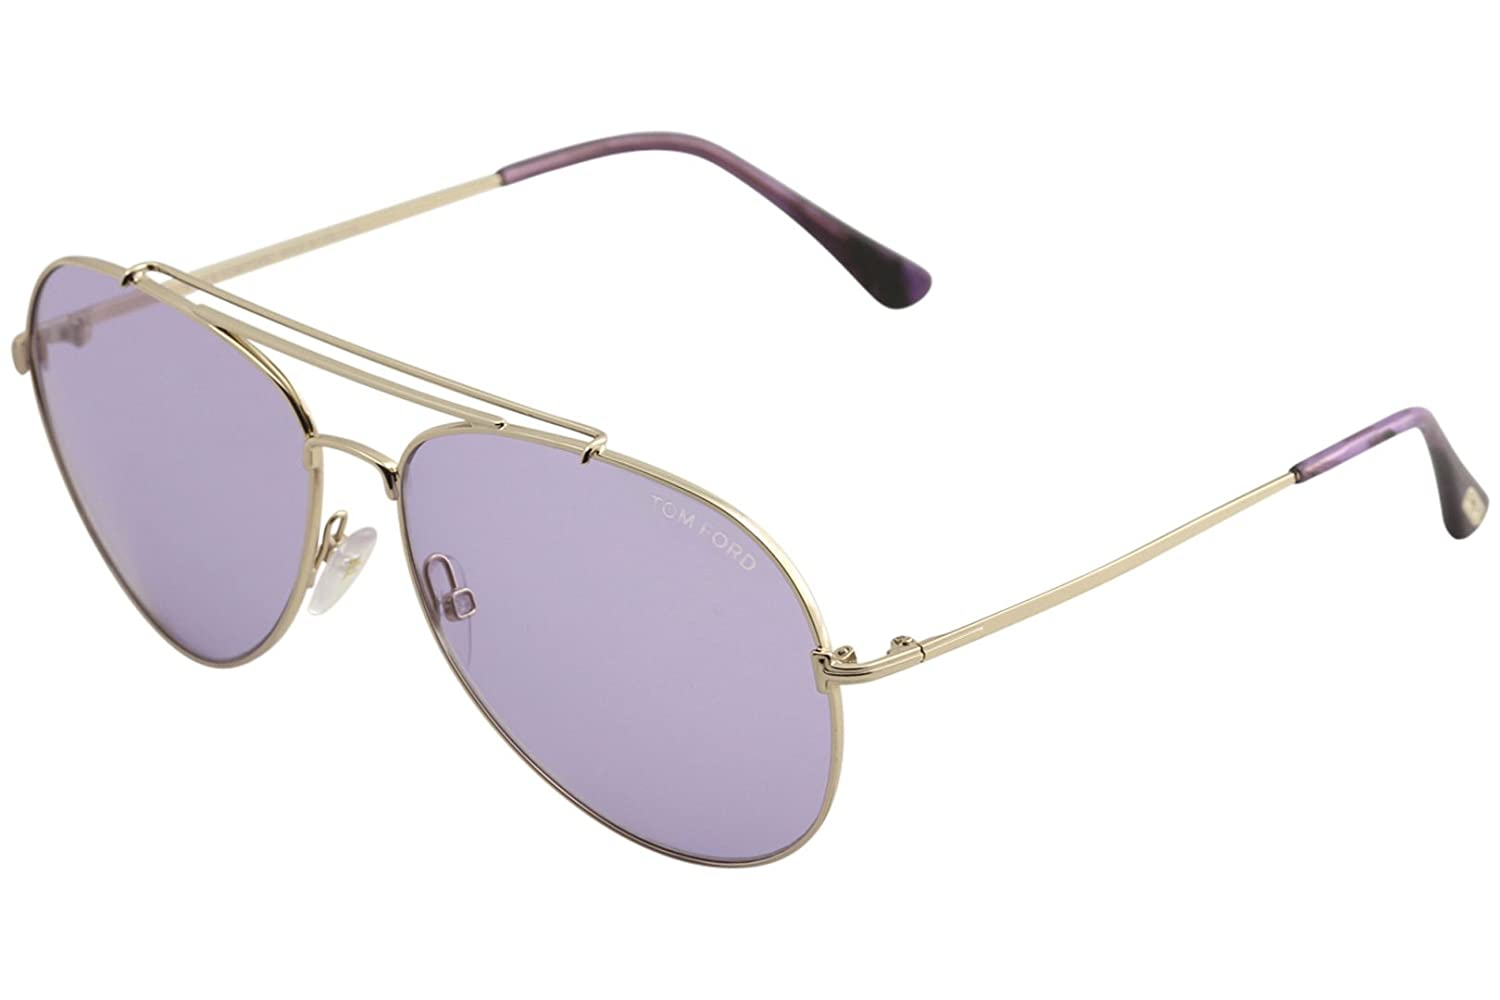 violet Sunglasses Tom Ford INDIANA TF 497 FT 28Y shiny rose gold